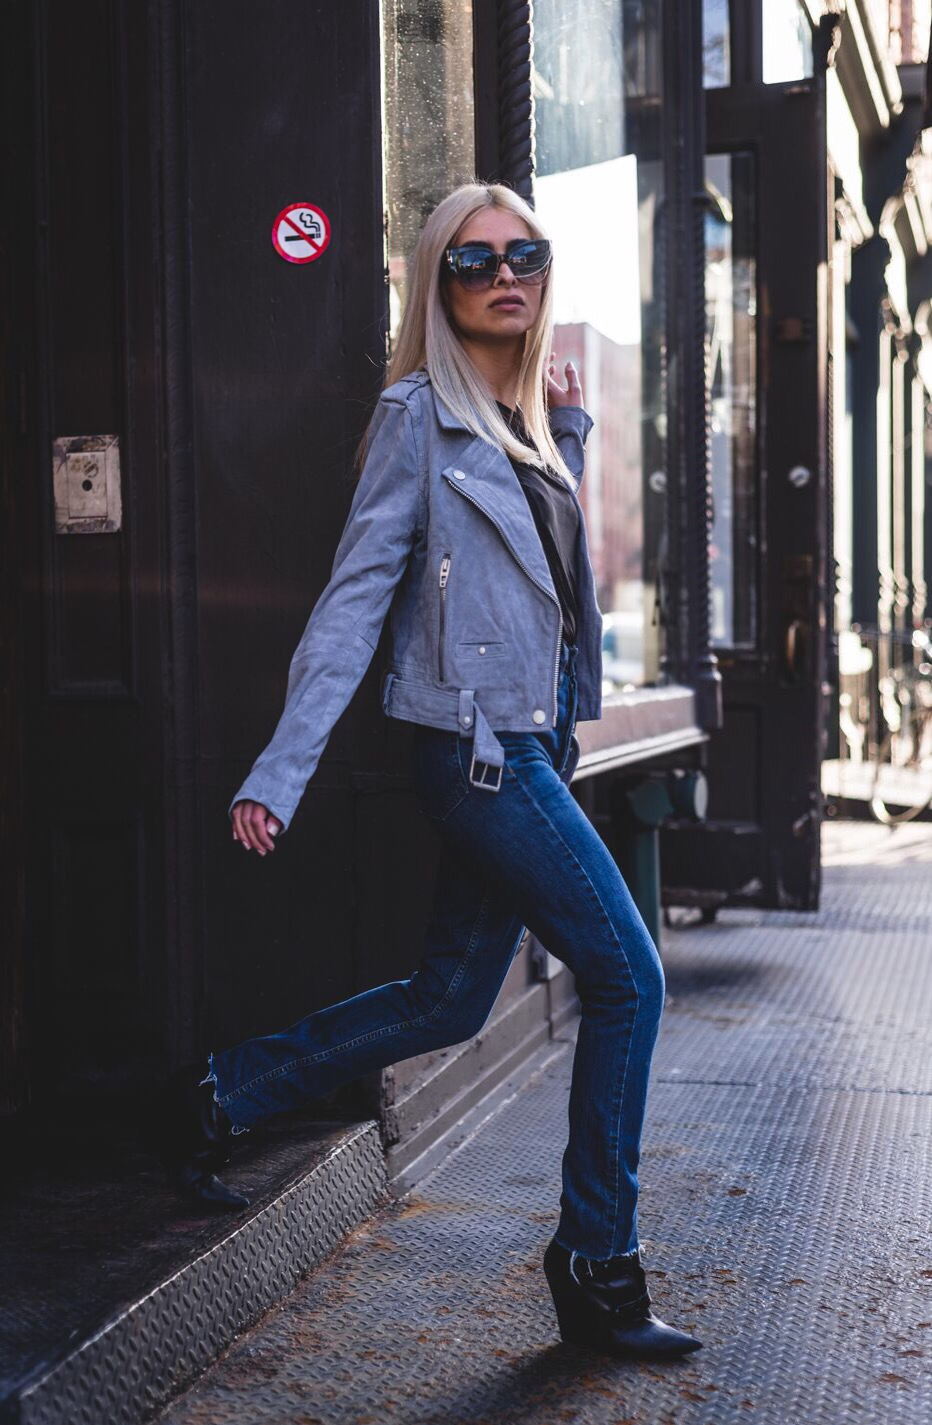 redone jeans_shop redone_savvy javvy_denim_high waisted jeans_tom ford_blank nyc suede jacket_gray suede jacket_bebe stores_bebe shirt_black wedge booties